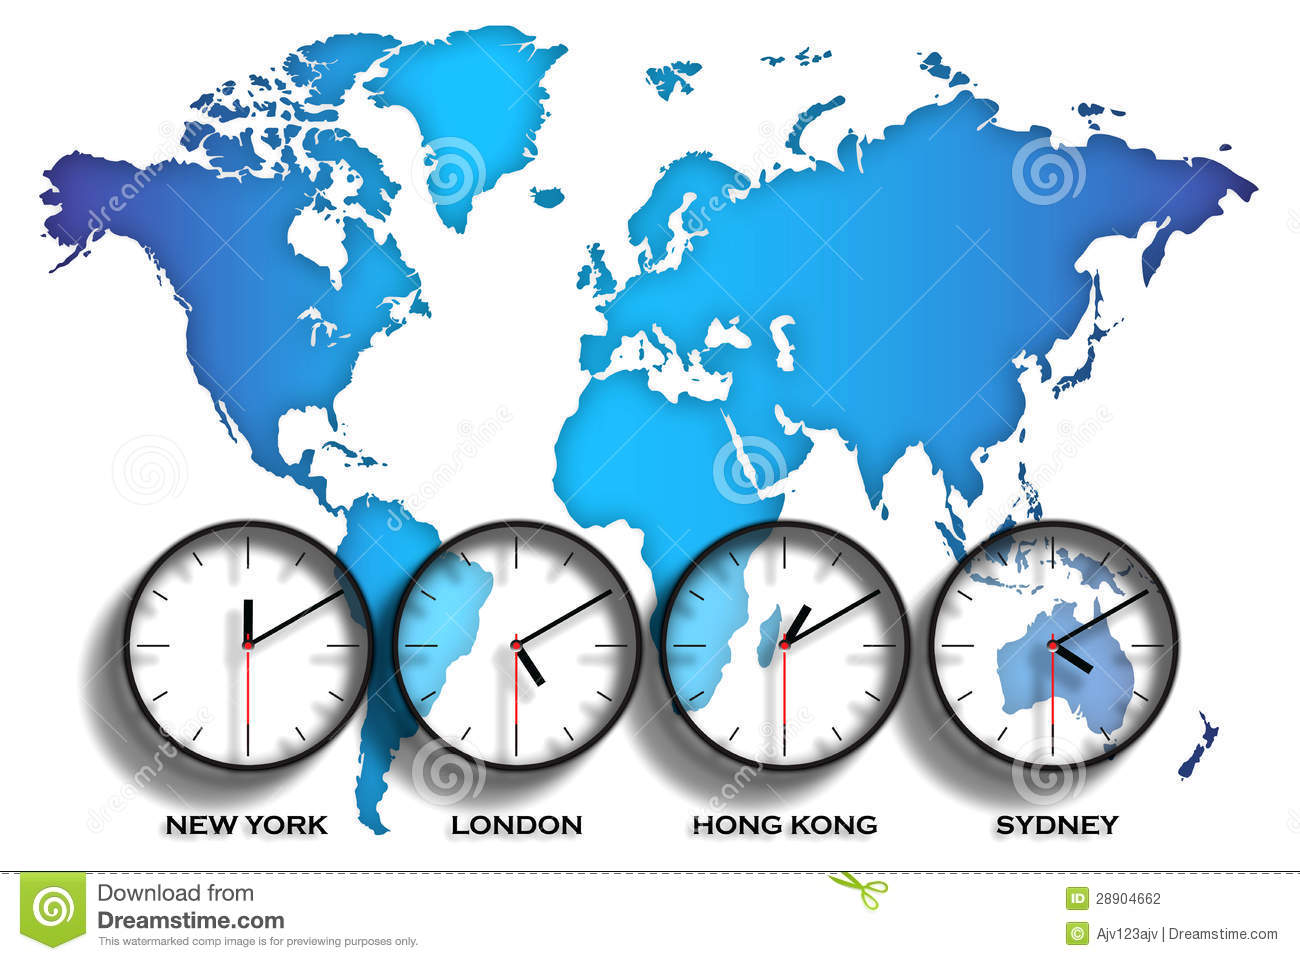 World map time zones stock illustration illustration of sydney world map time zones gumiabroncs